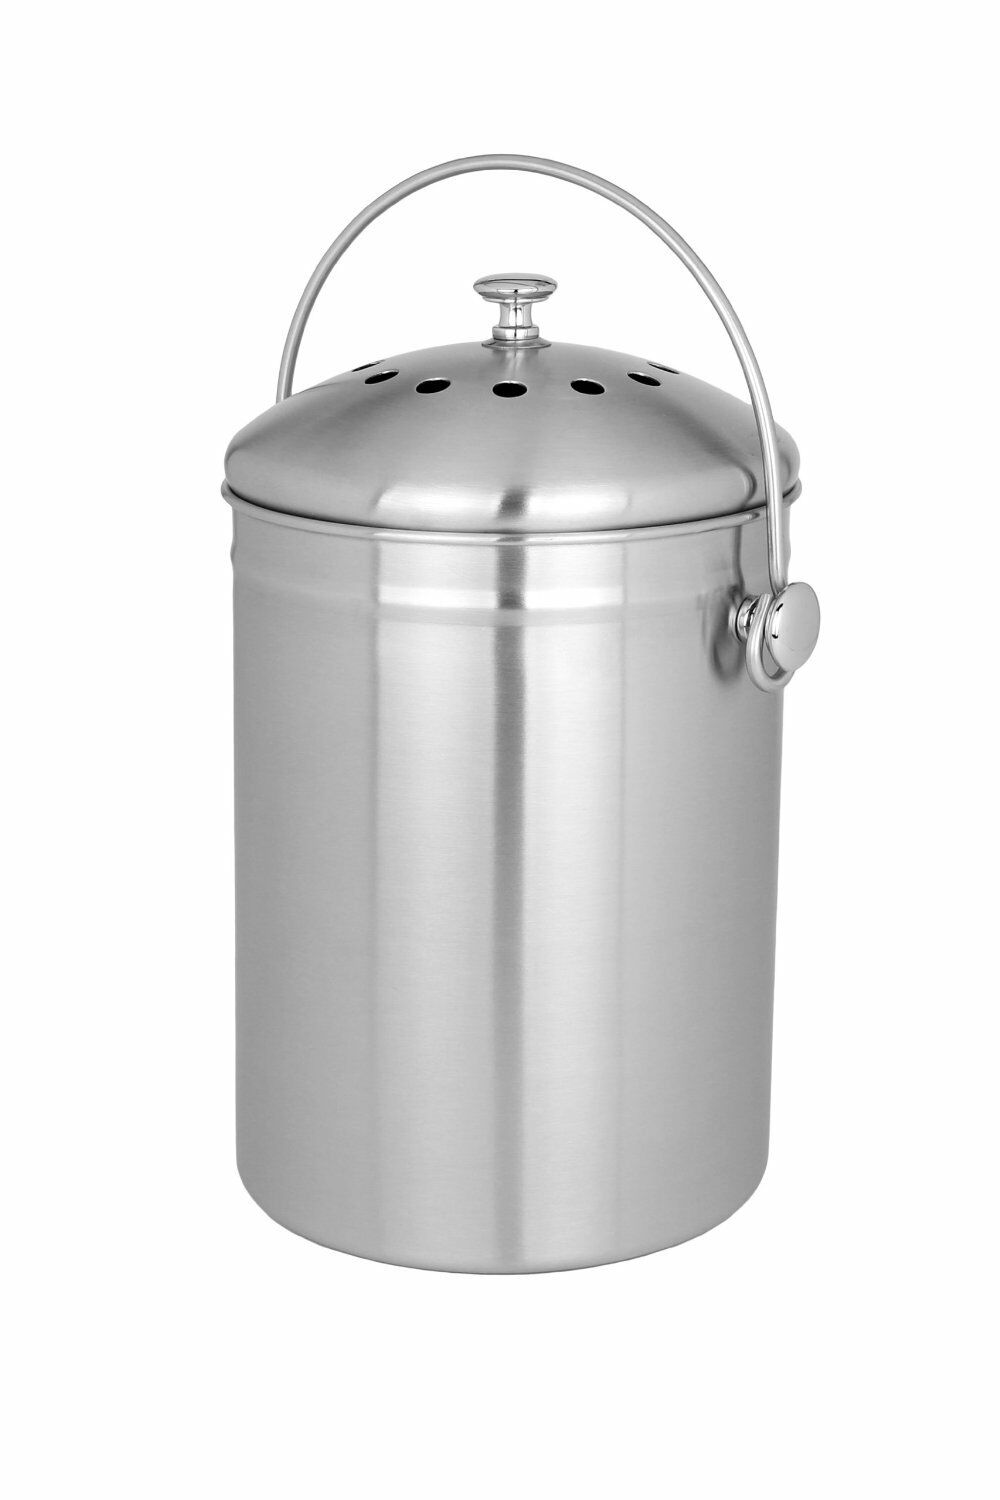 countertop kitchen compost bin 1 gallon stylish stainless steel